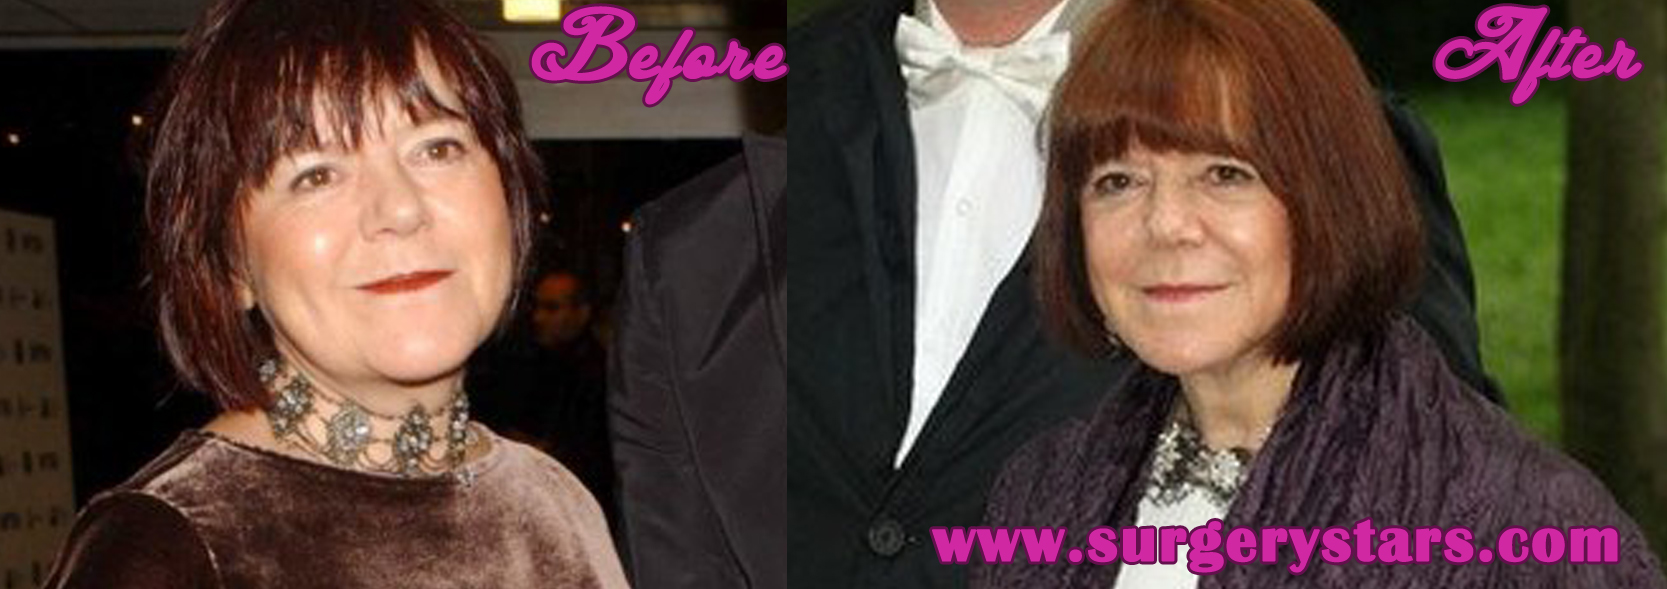 rima horton before and after